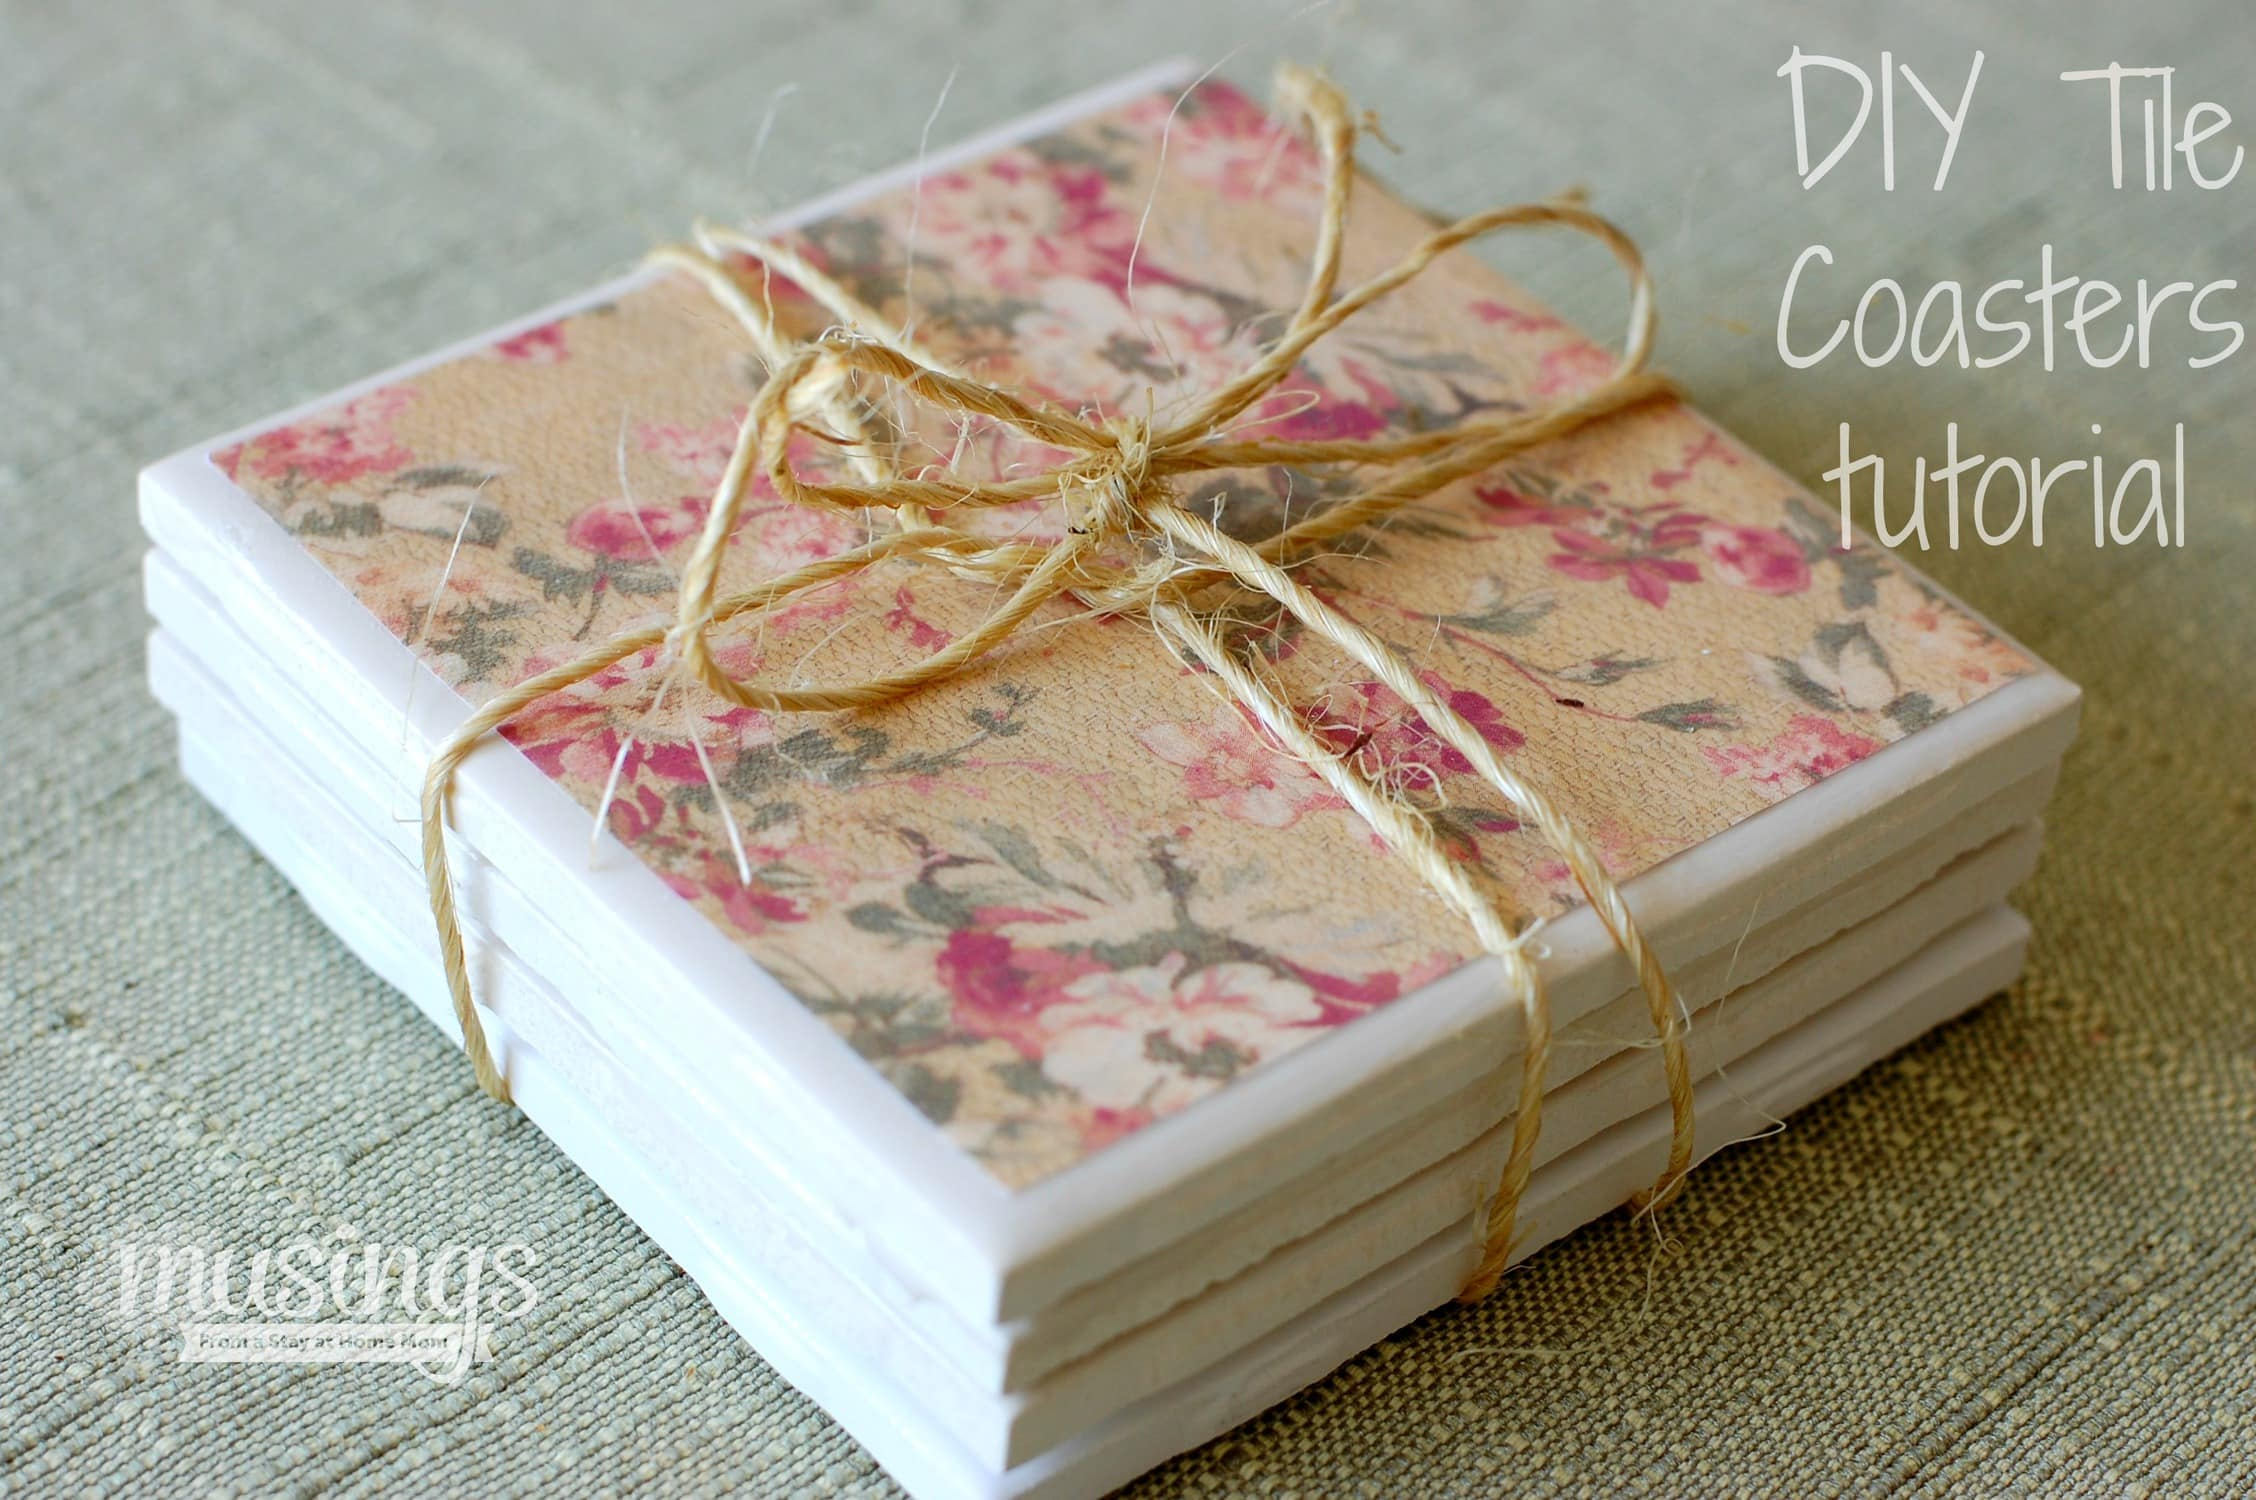 DIY Tile Coasters Tutorial - Living Well Mom